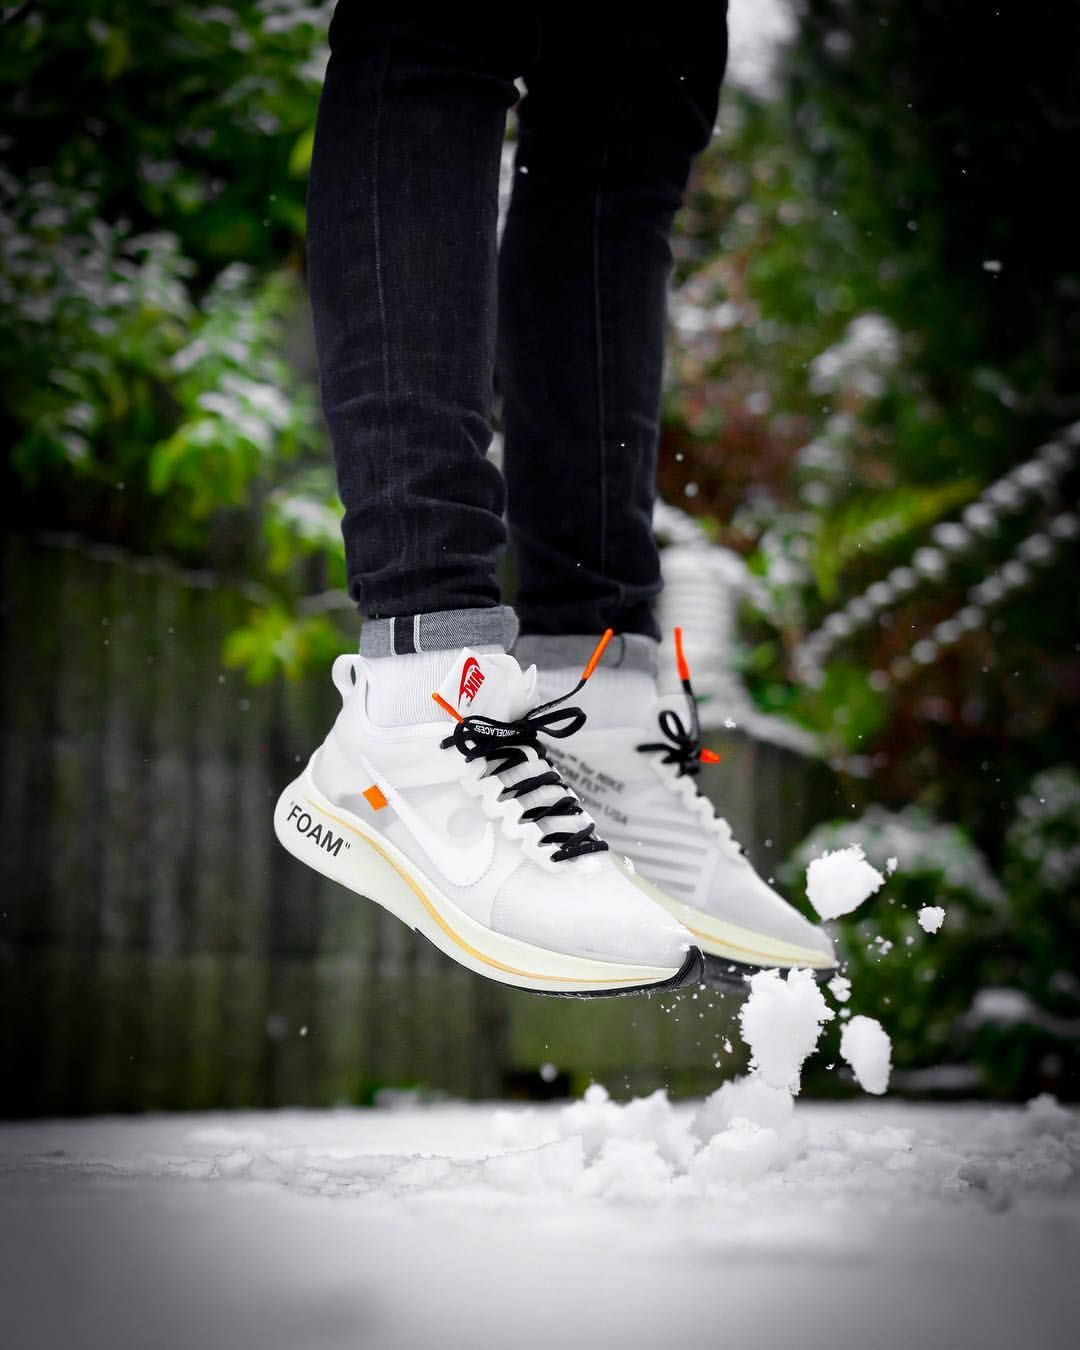 Sneakers X White Zoom Sneakers Pinterest Nike Off Fly Shoes 0PzRwRq